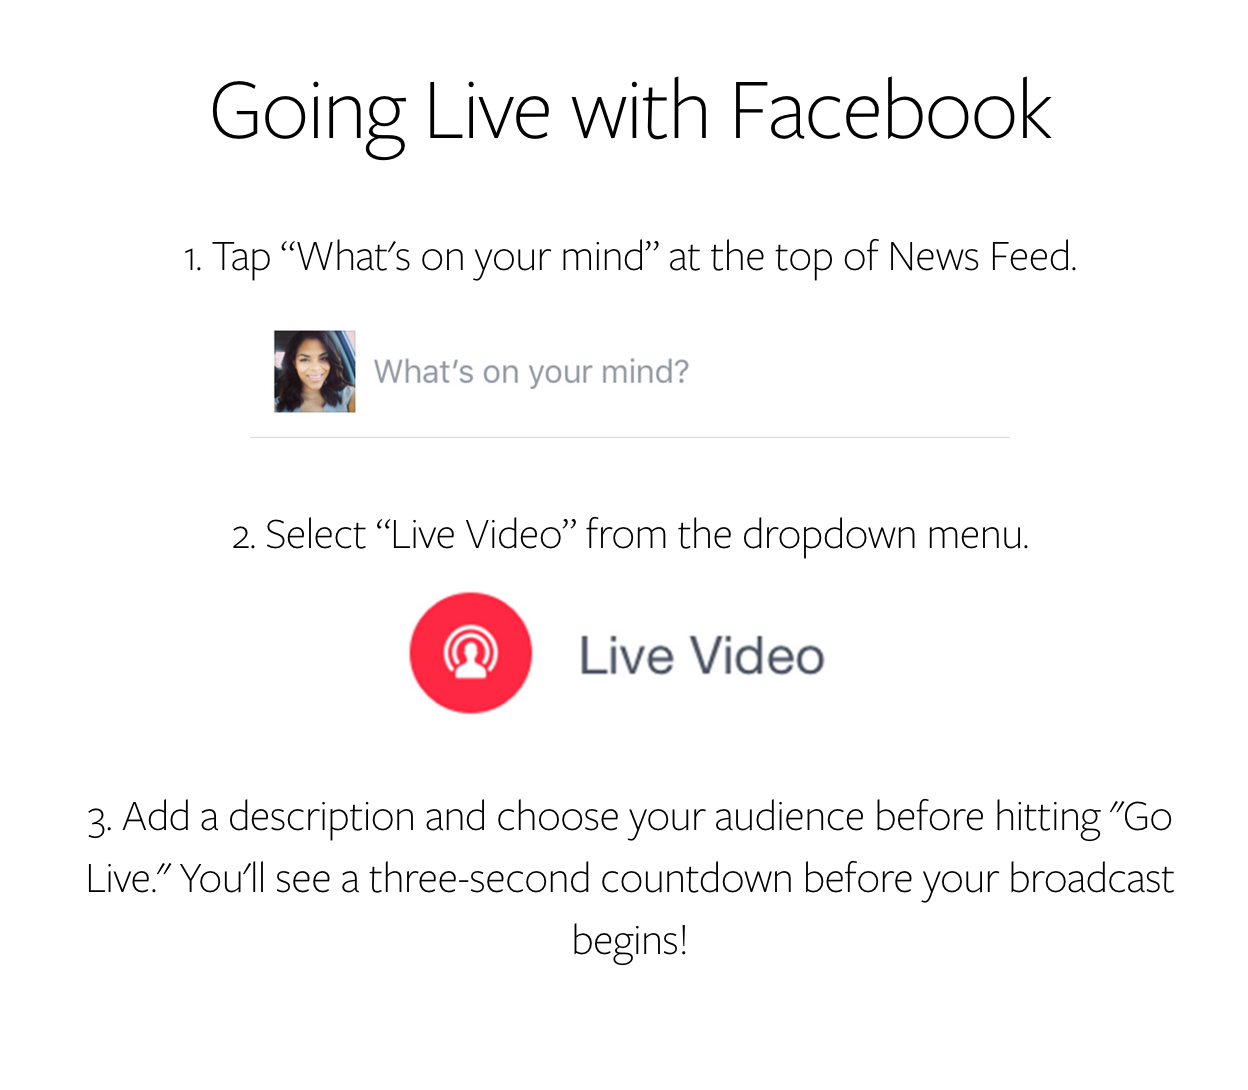 Going Live with Facebook Instructions